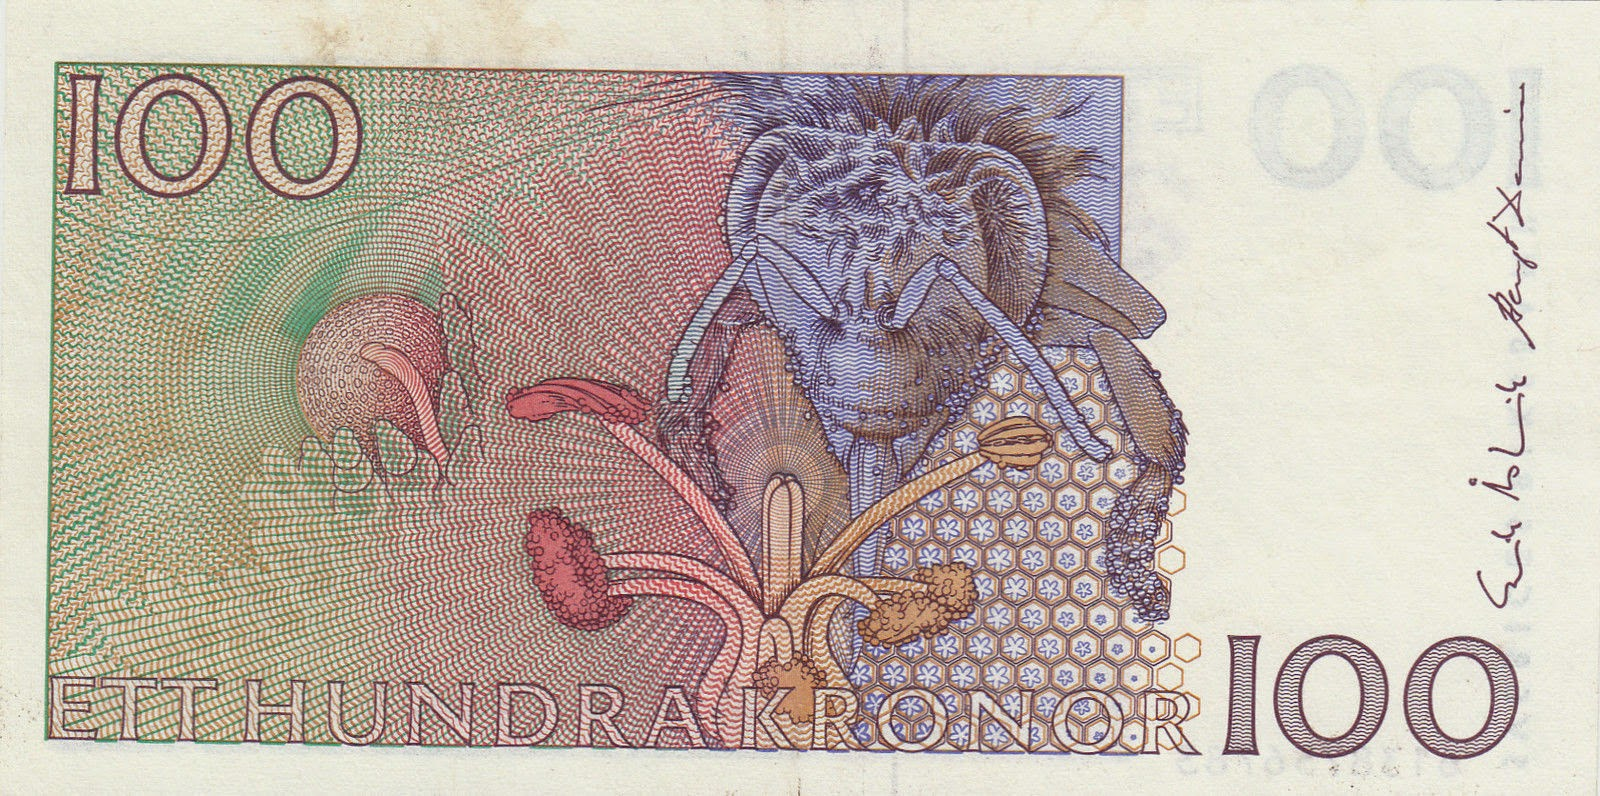 Sweden banknotes 100 Swedish Krona note, bee pollinating a flower